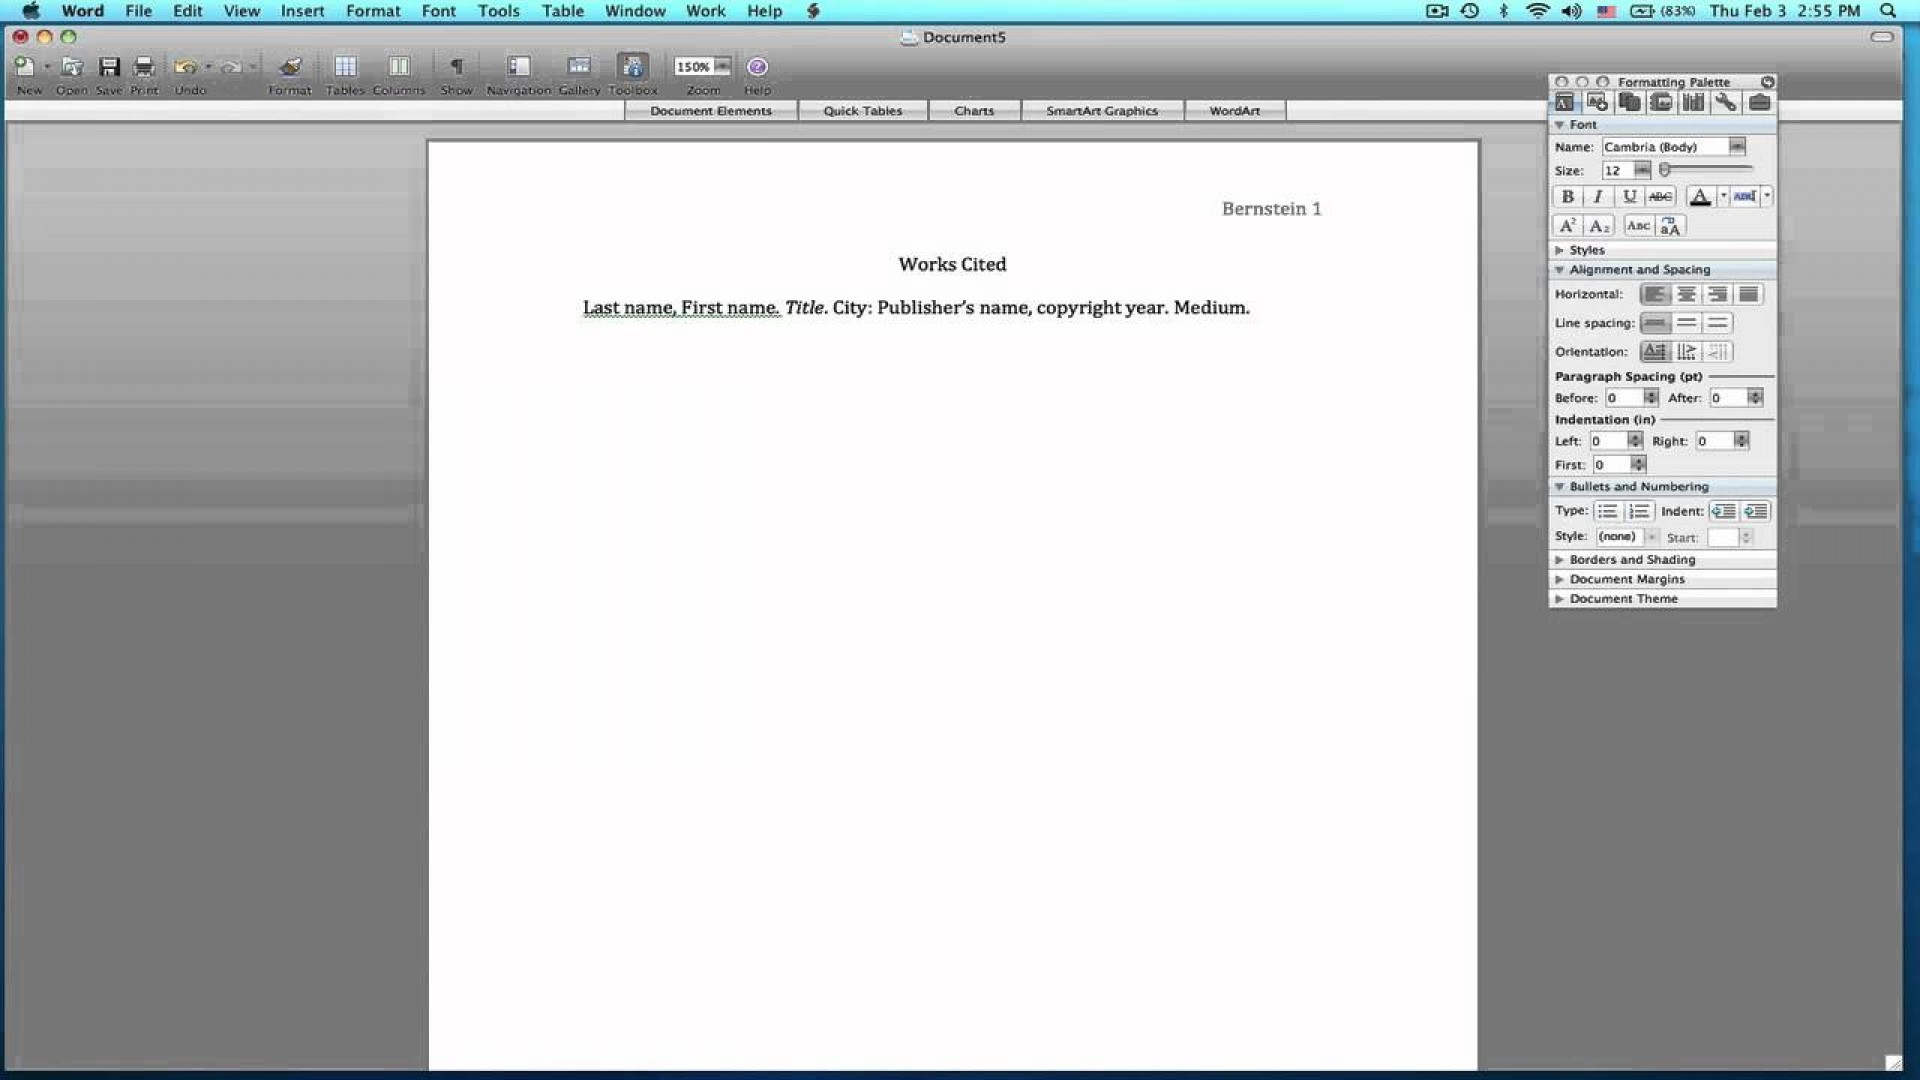 010 Maxresdefault Research Paper How To Do Mla Works Cited Unusual For A Page 1920